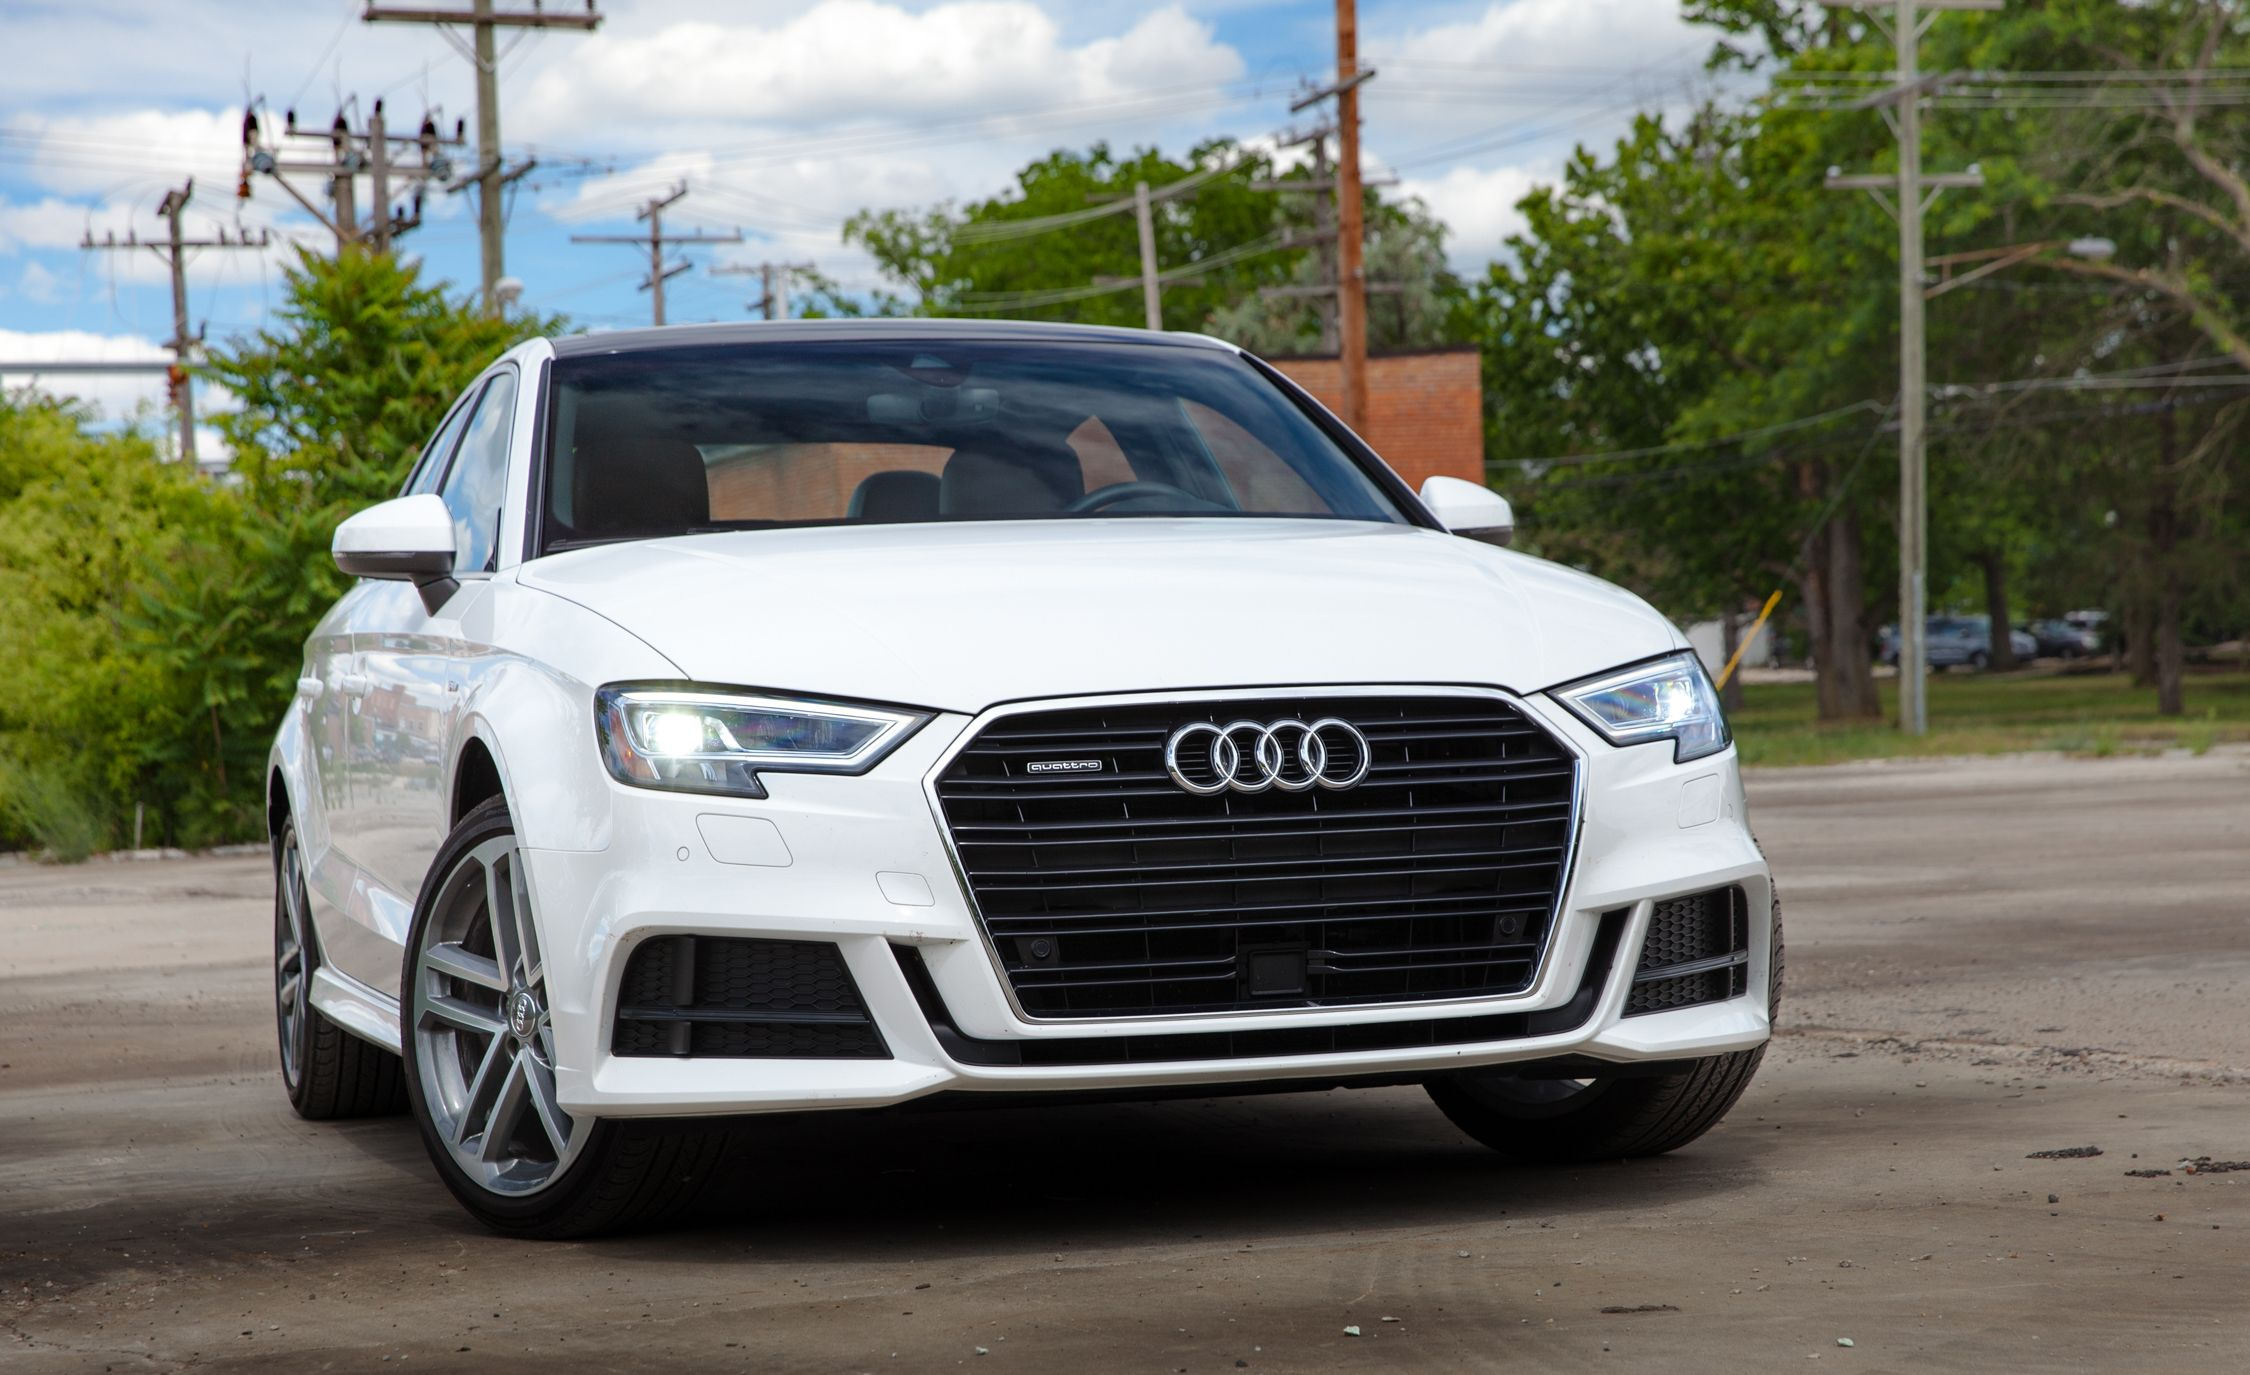 Audi A Engine And Transmission Review Car And Driver - Audi a3 quattro